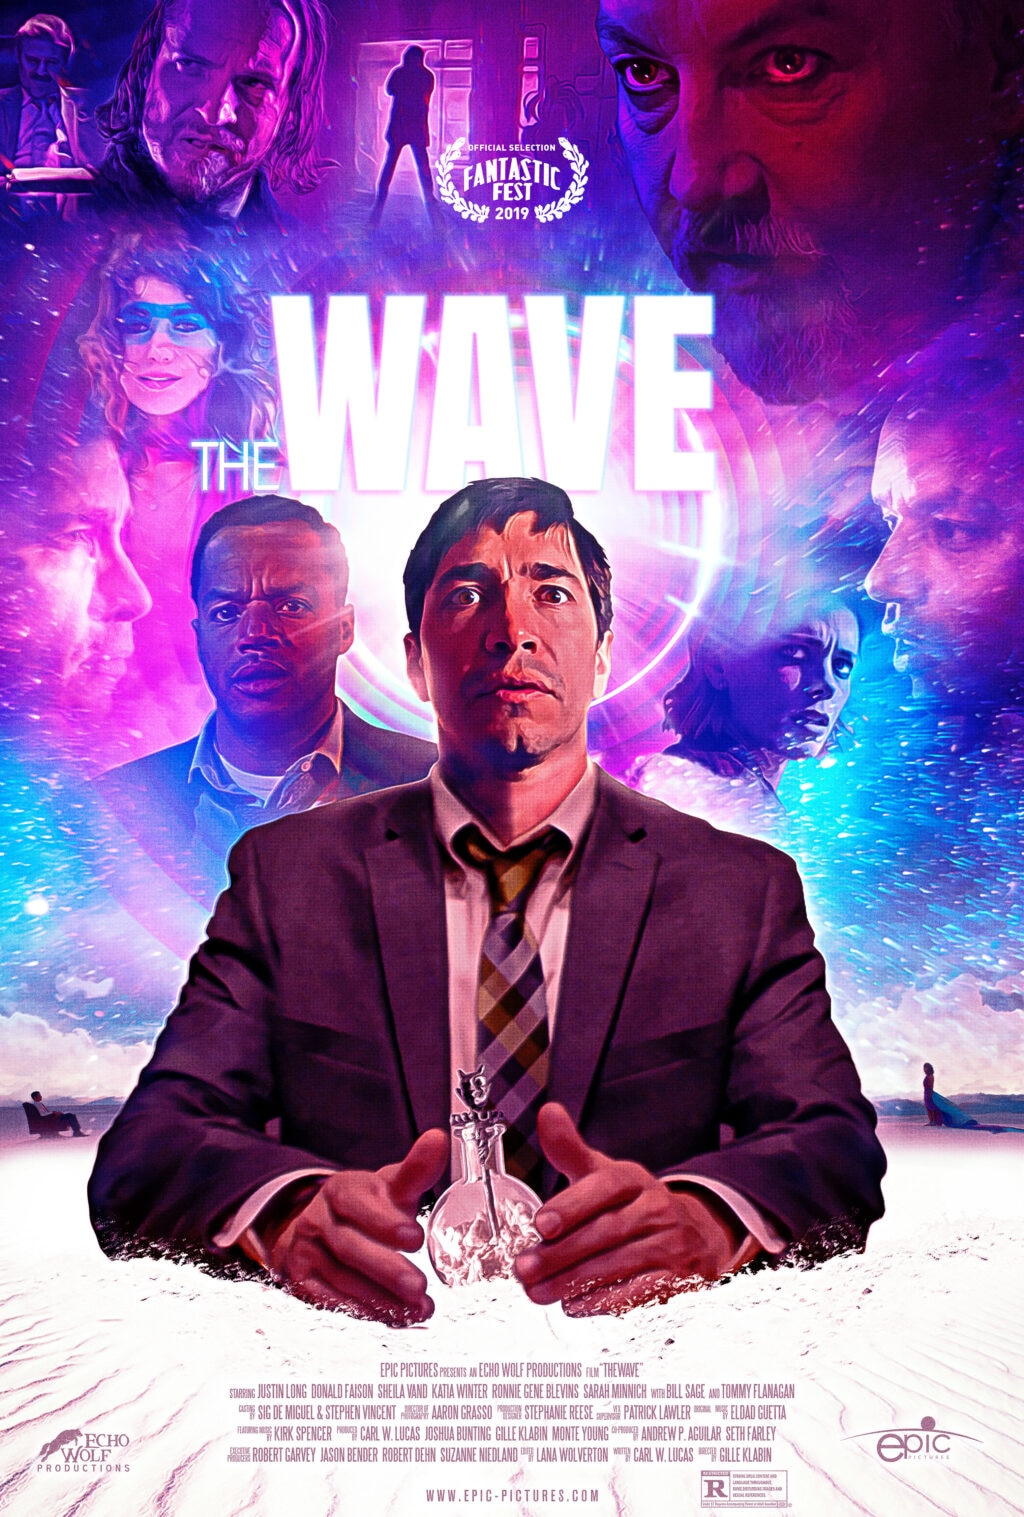 THE WAVE poster 1024x1517 - The Wave is Now in Select Theaters & VOD; Blu-ray 2/11